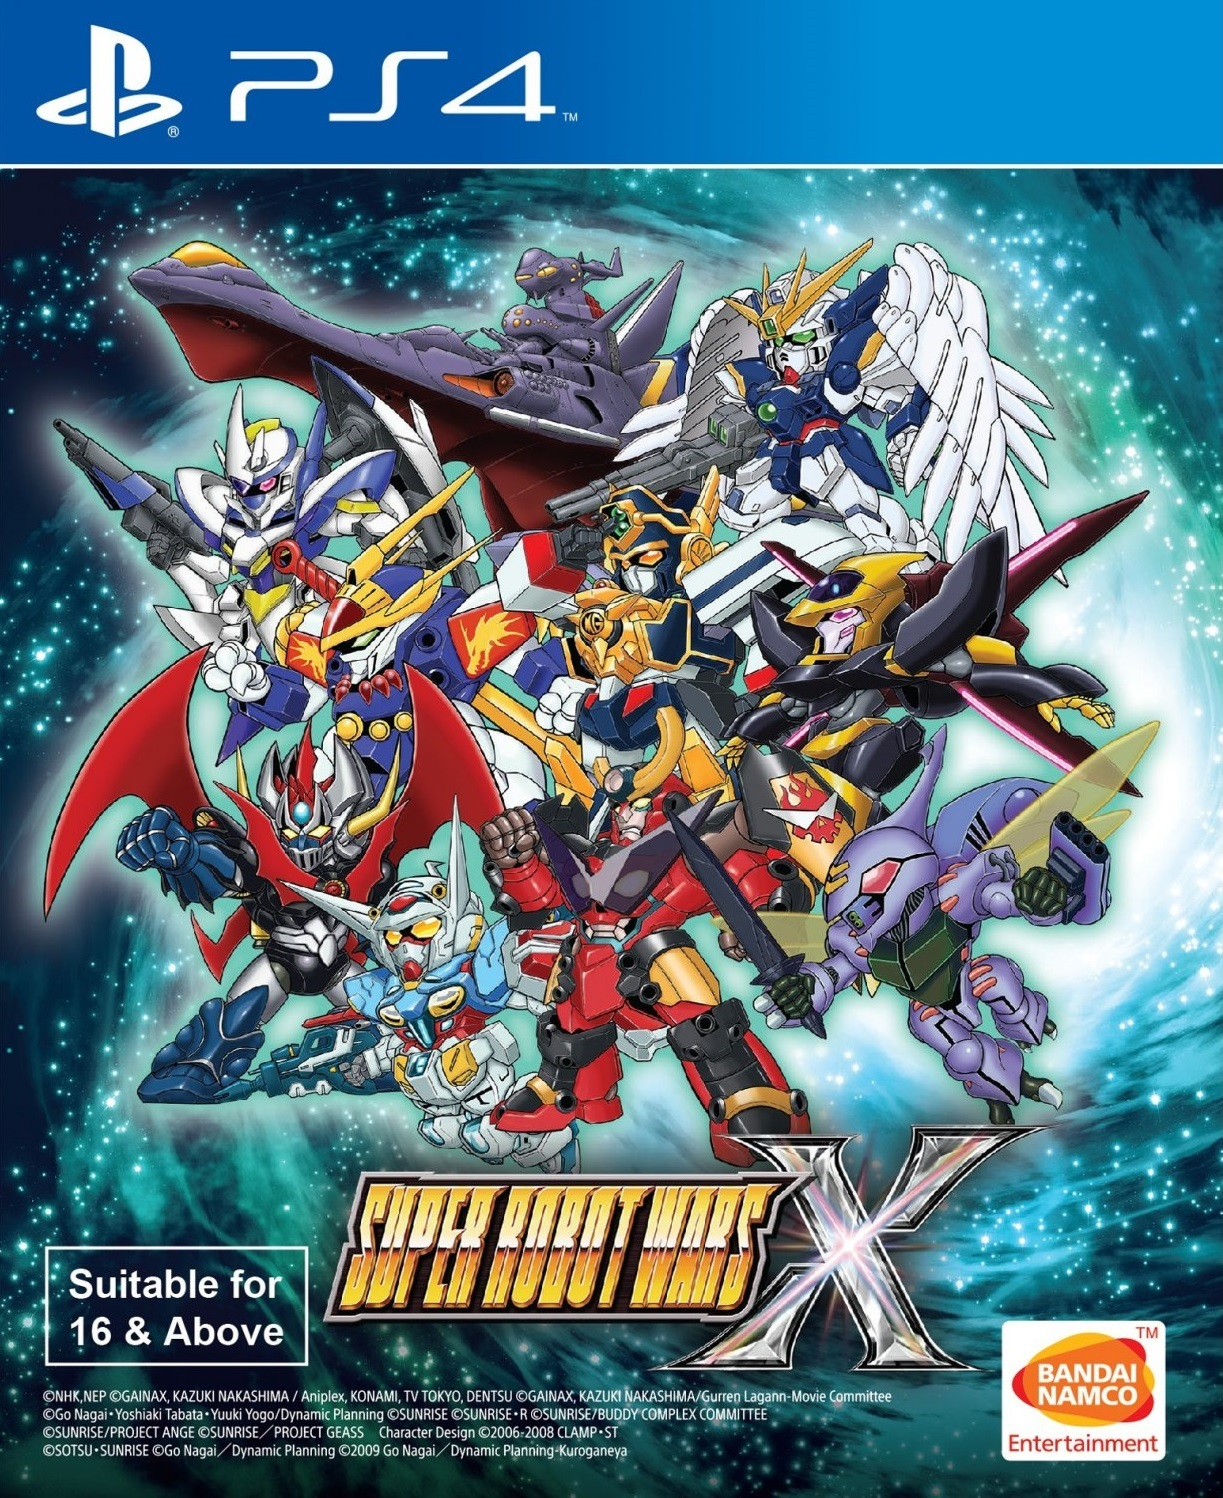 super-robot-wars-x-english-subs-steelbook-edition-549545.13.jpg